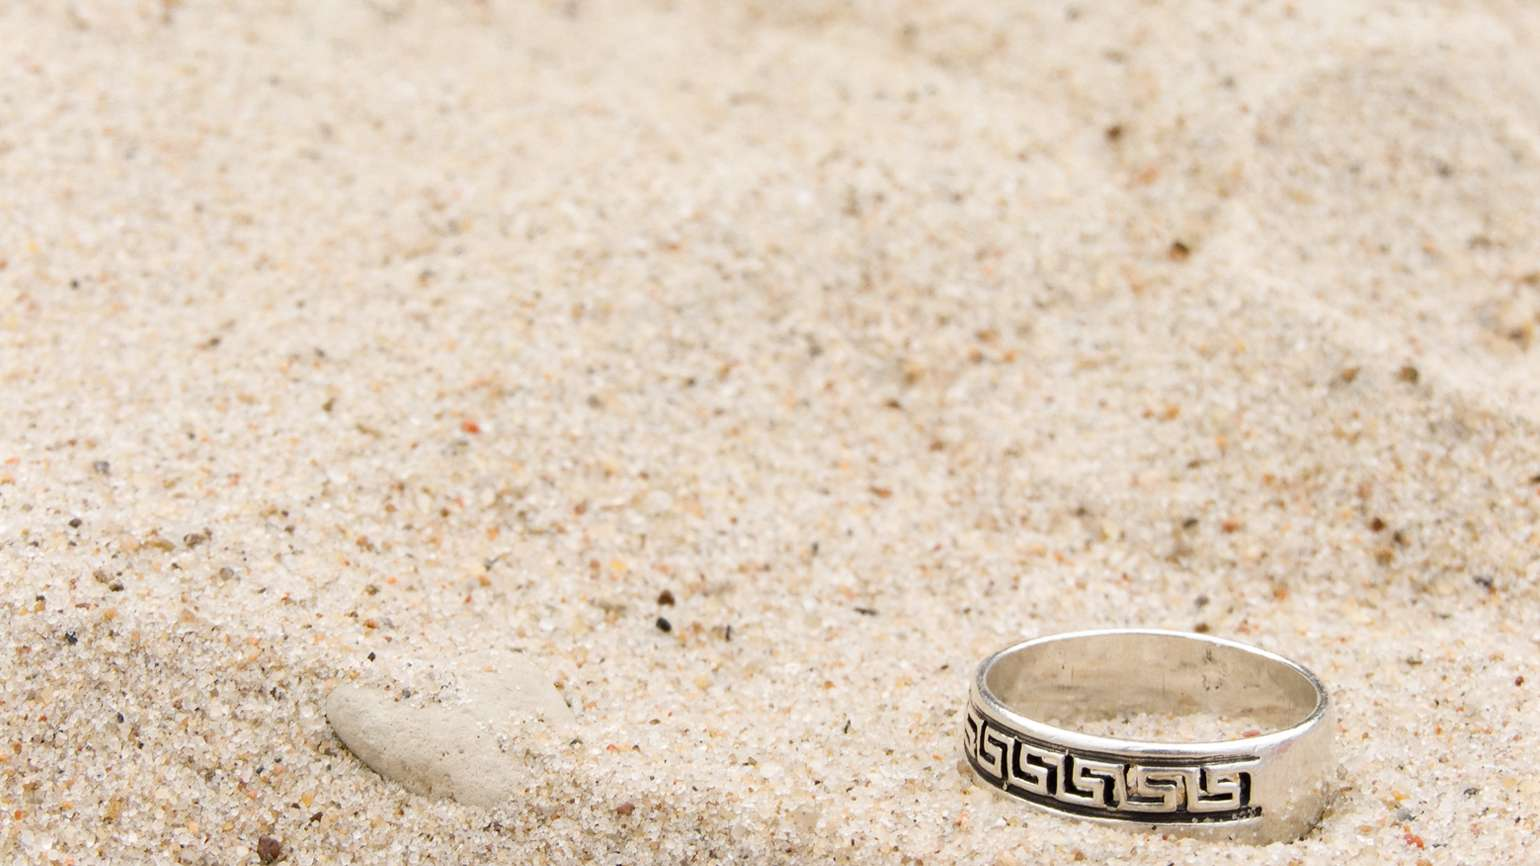 A wedding band on the sand.